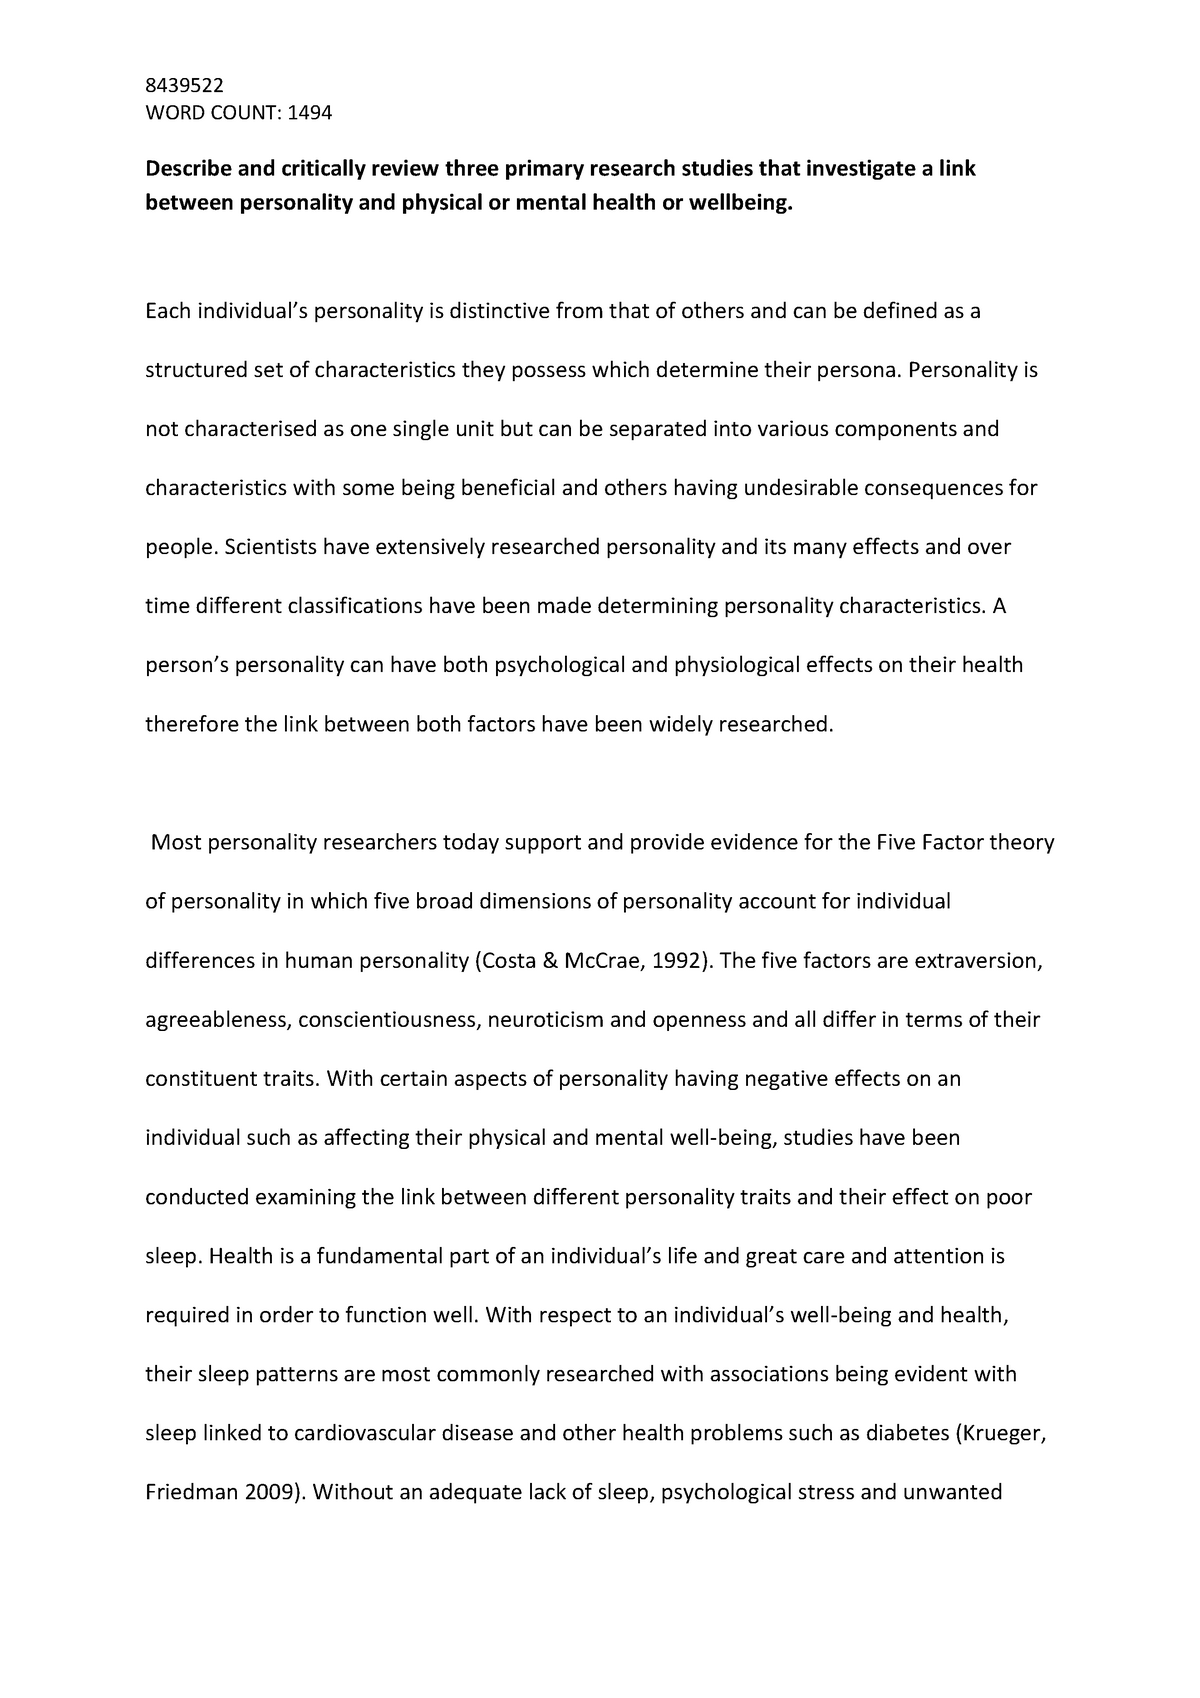 Essay: Describe and critically review three primary research